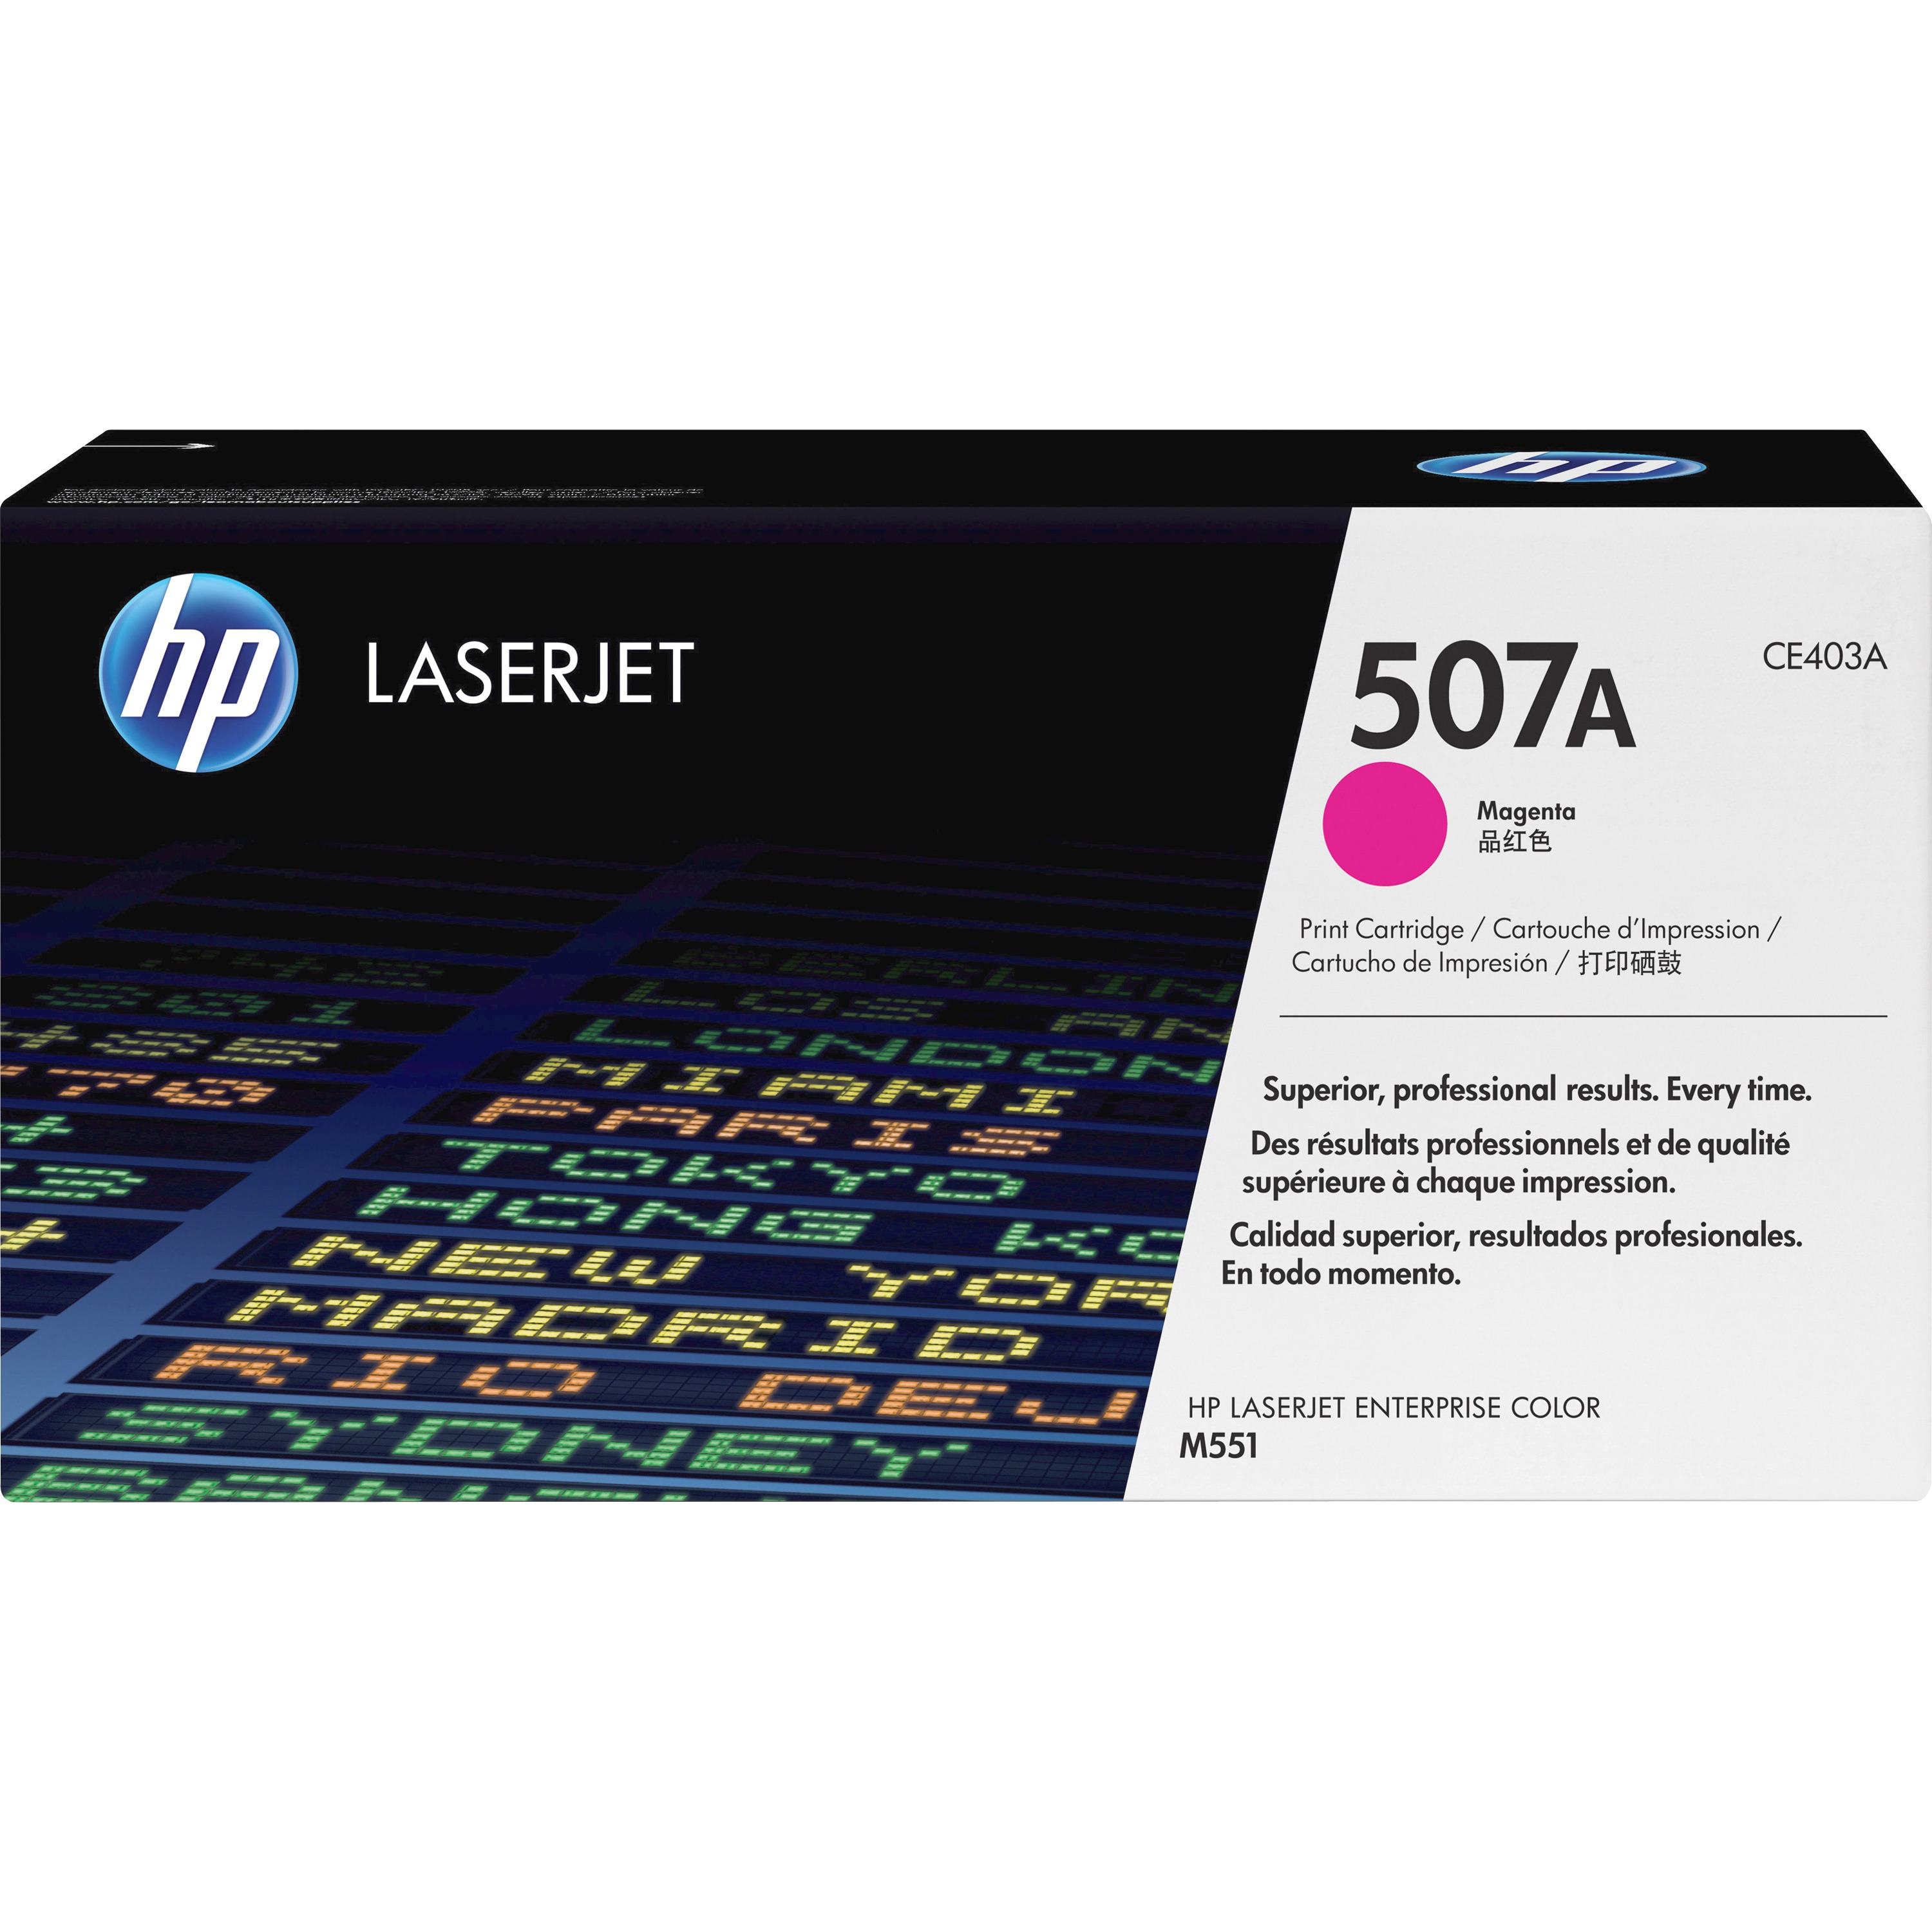 HP, HEWCE403A, 507A/507X Toner Cartridges, 1 Each